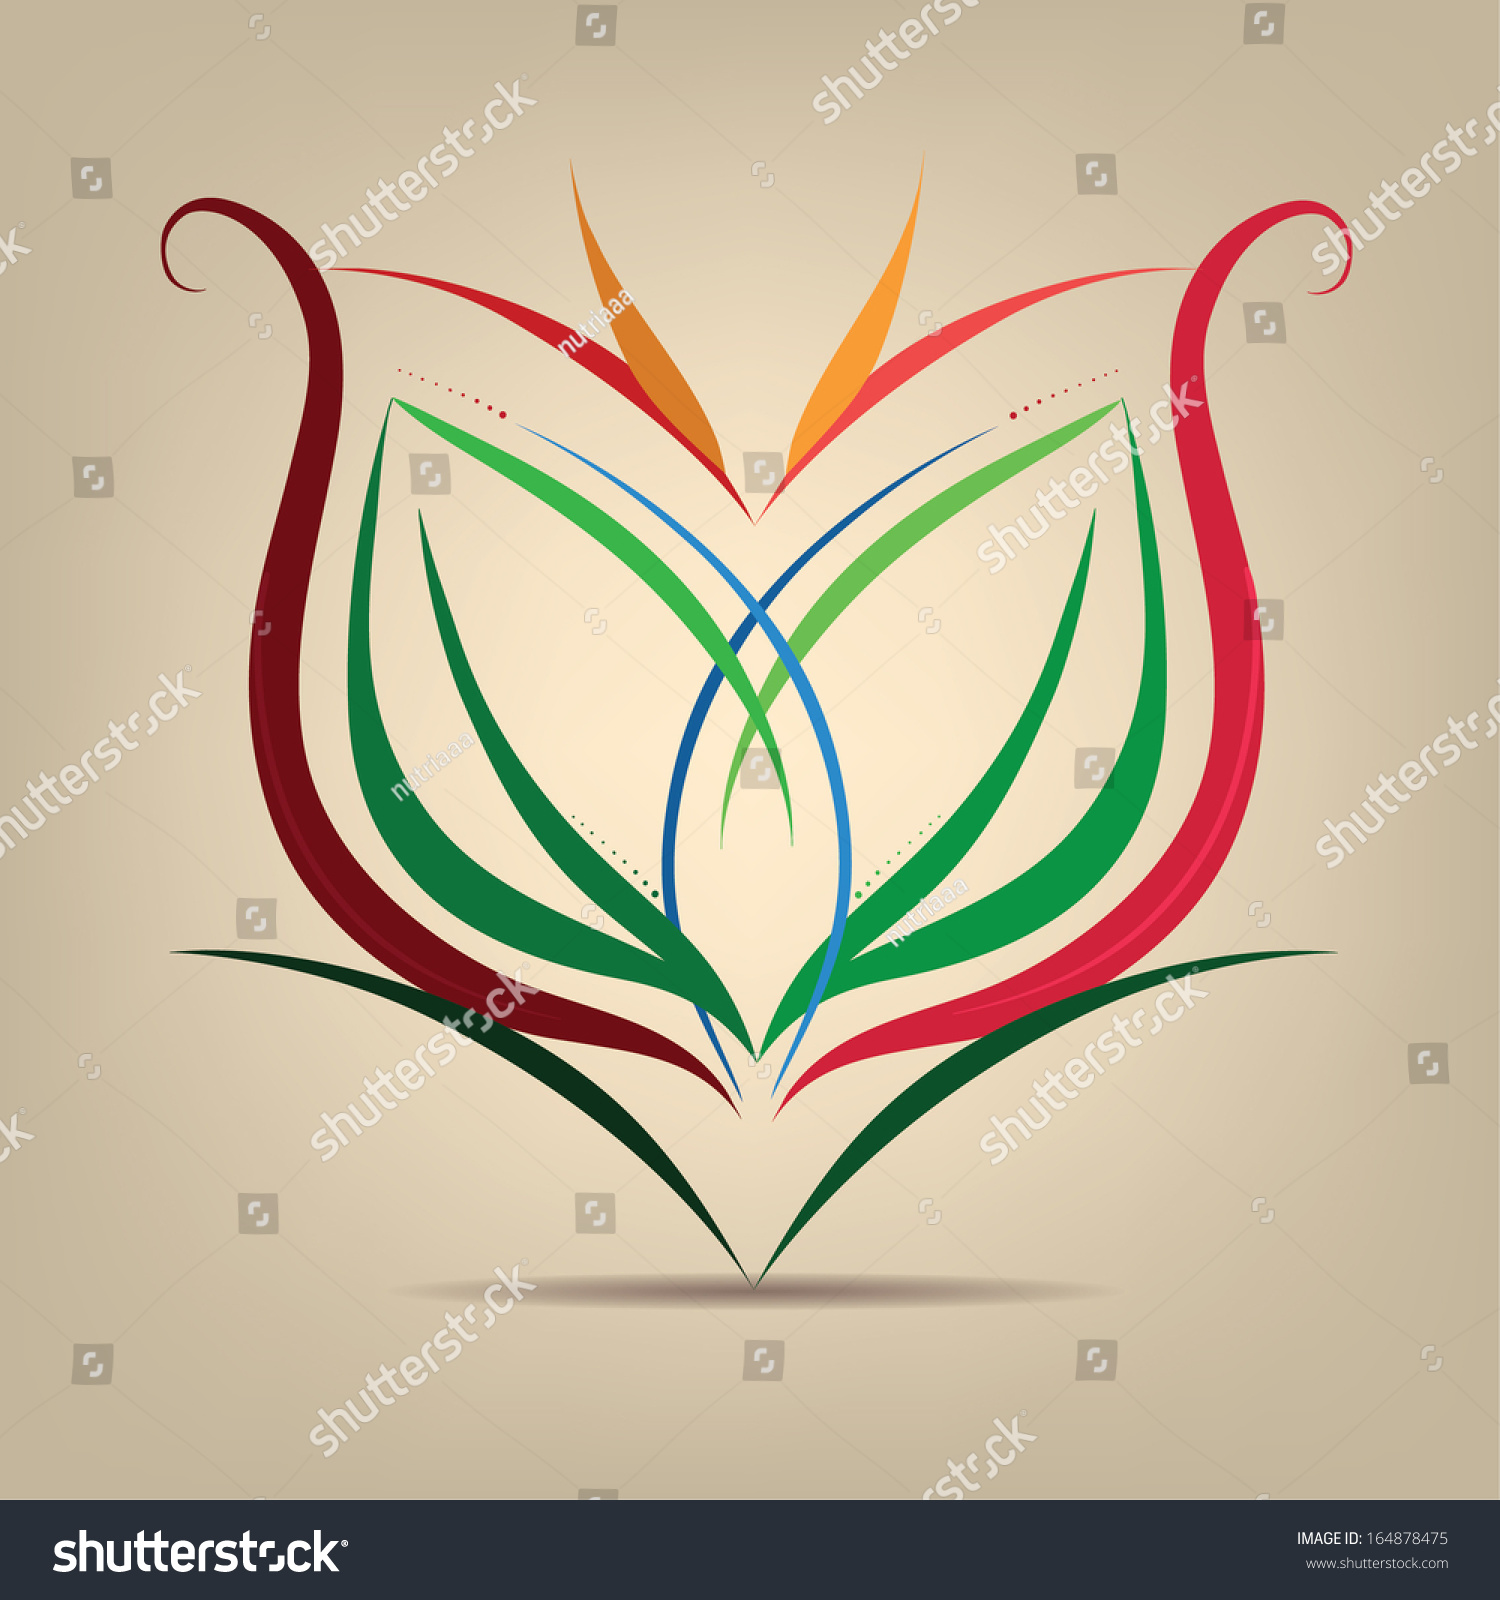 Flower Symbol In The Abstract Vector Illustration Shutterstock